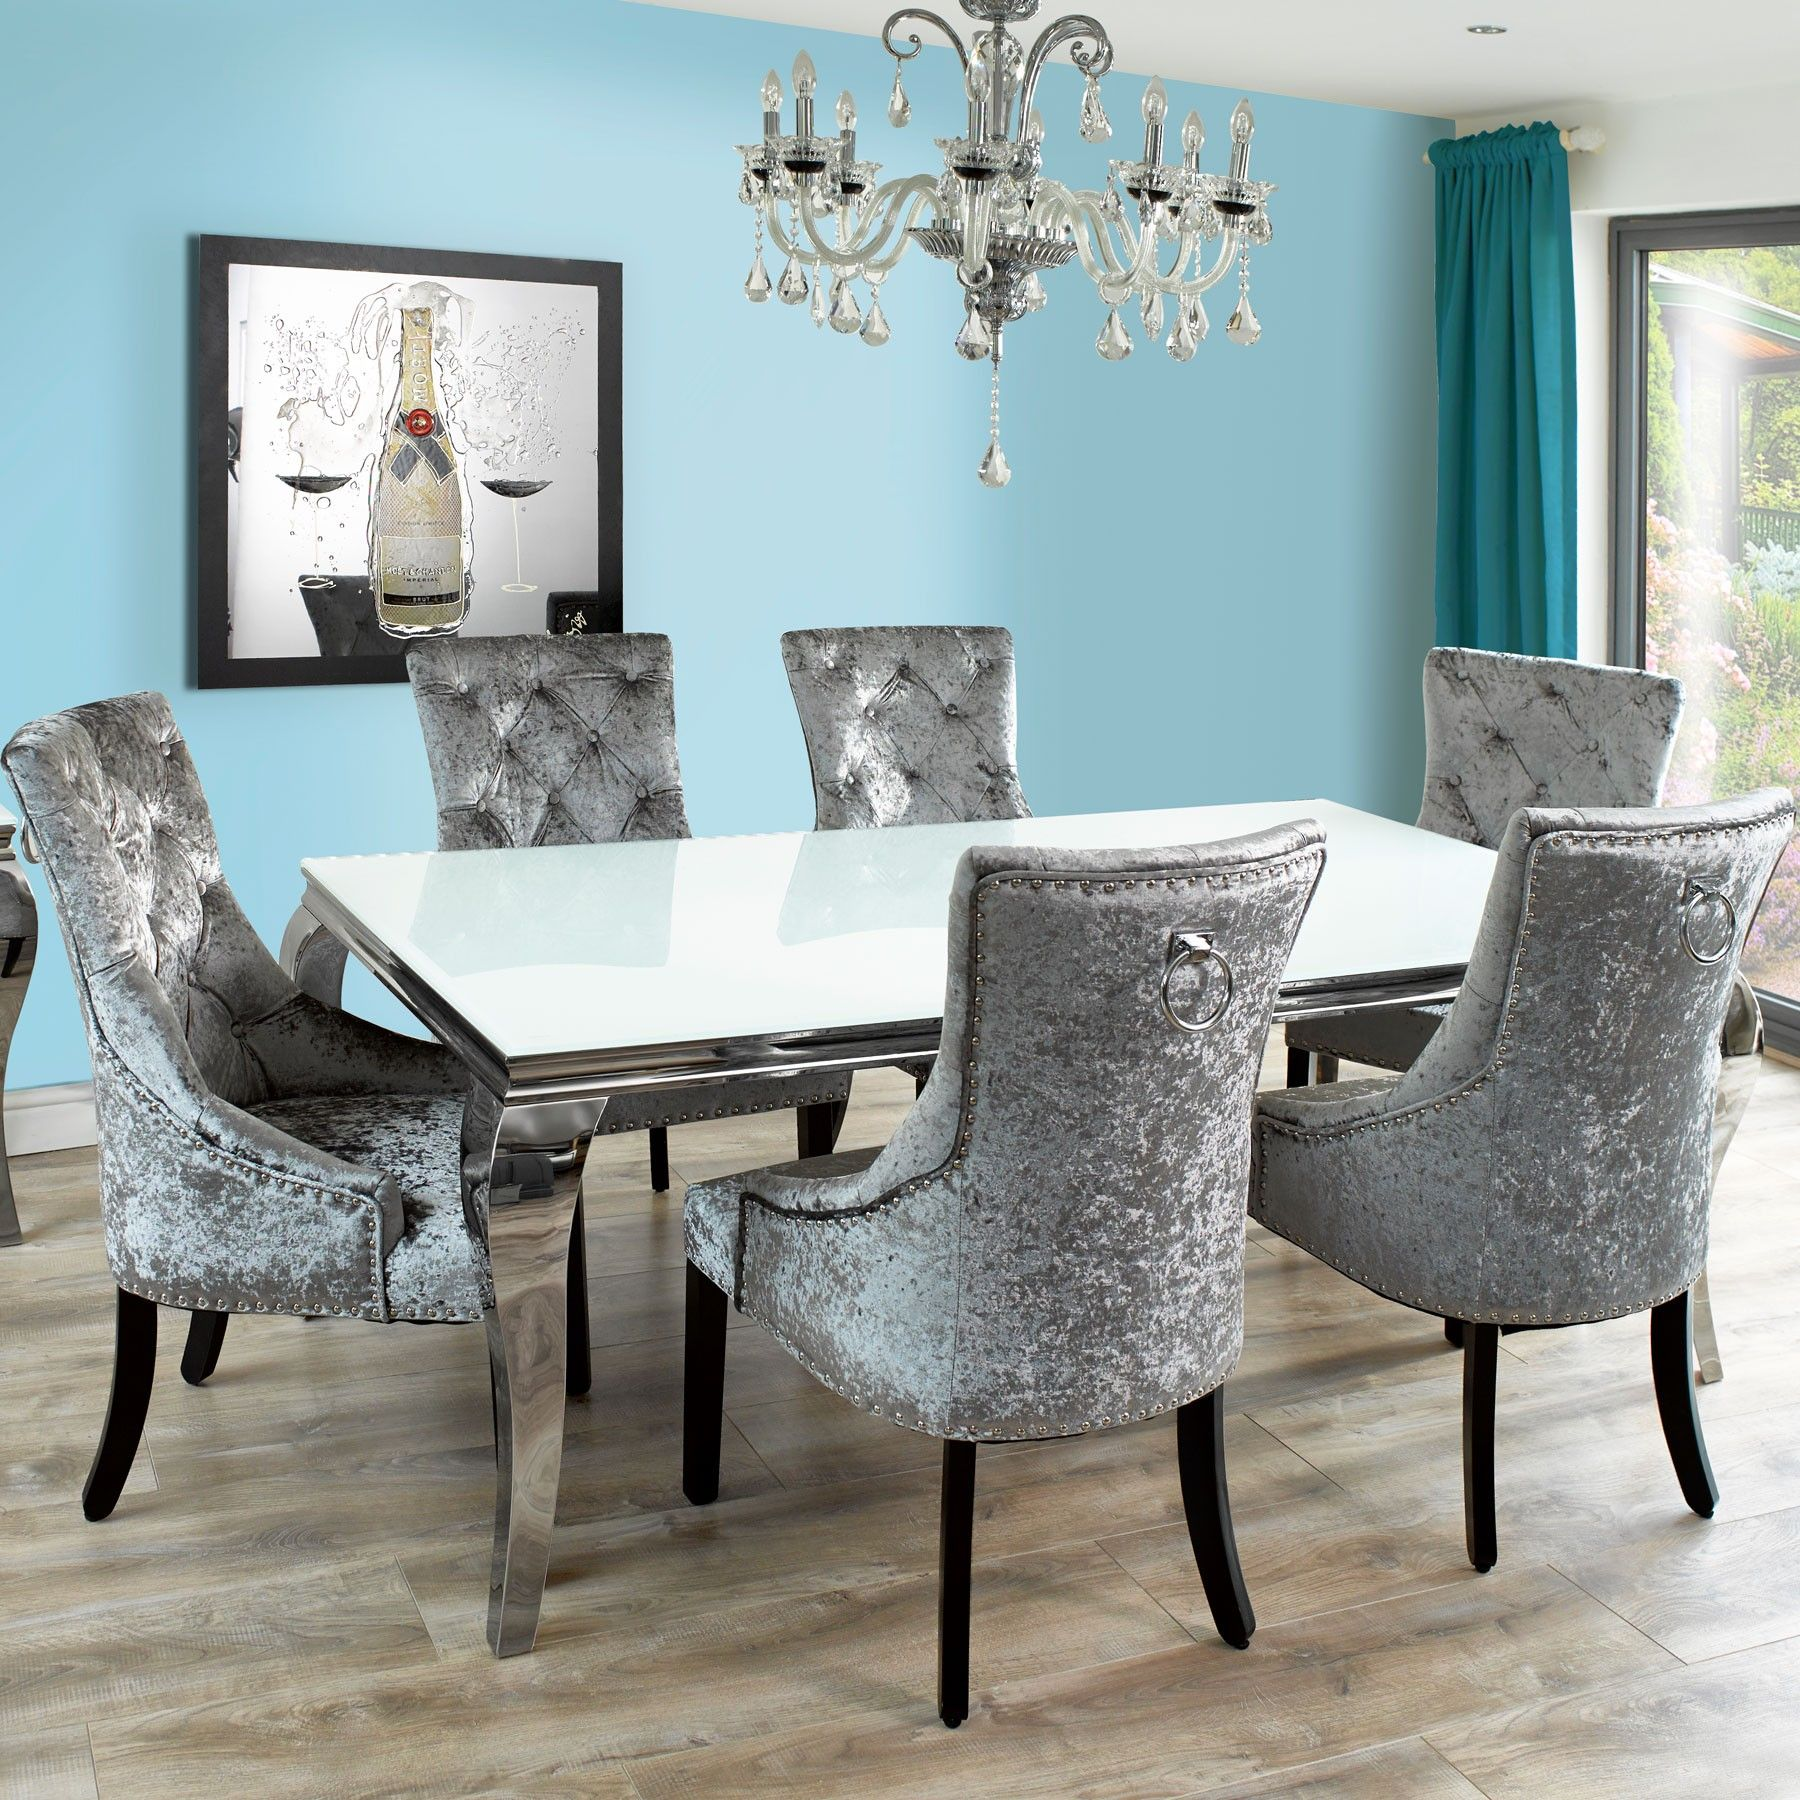 Dining Table And Chairs Blue Chairs Living Room Contemporary